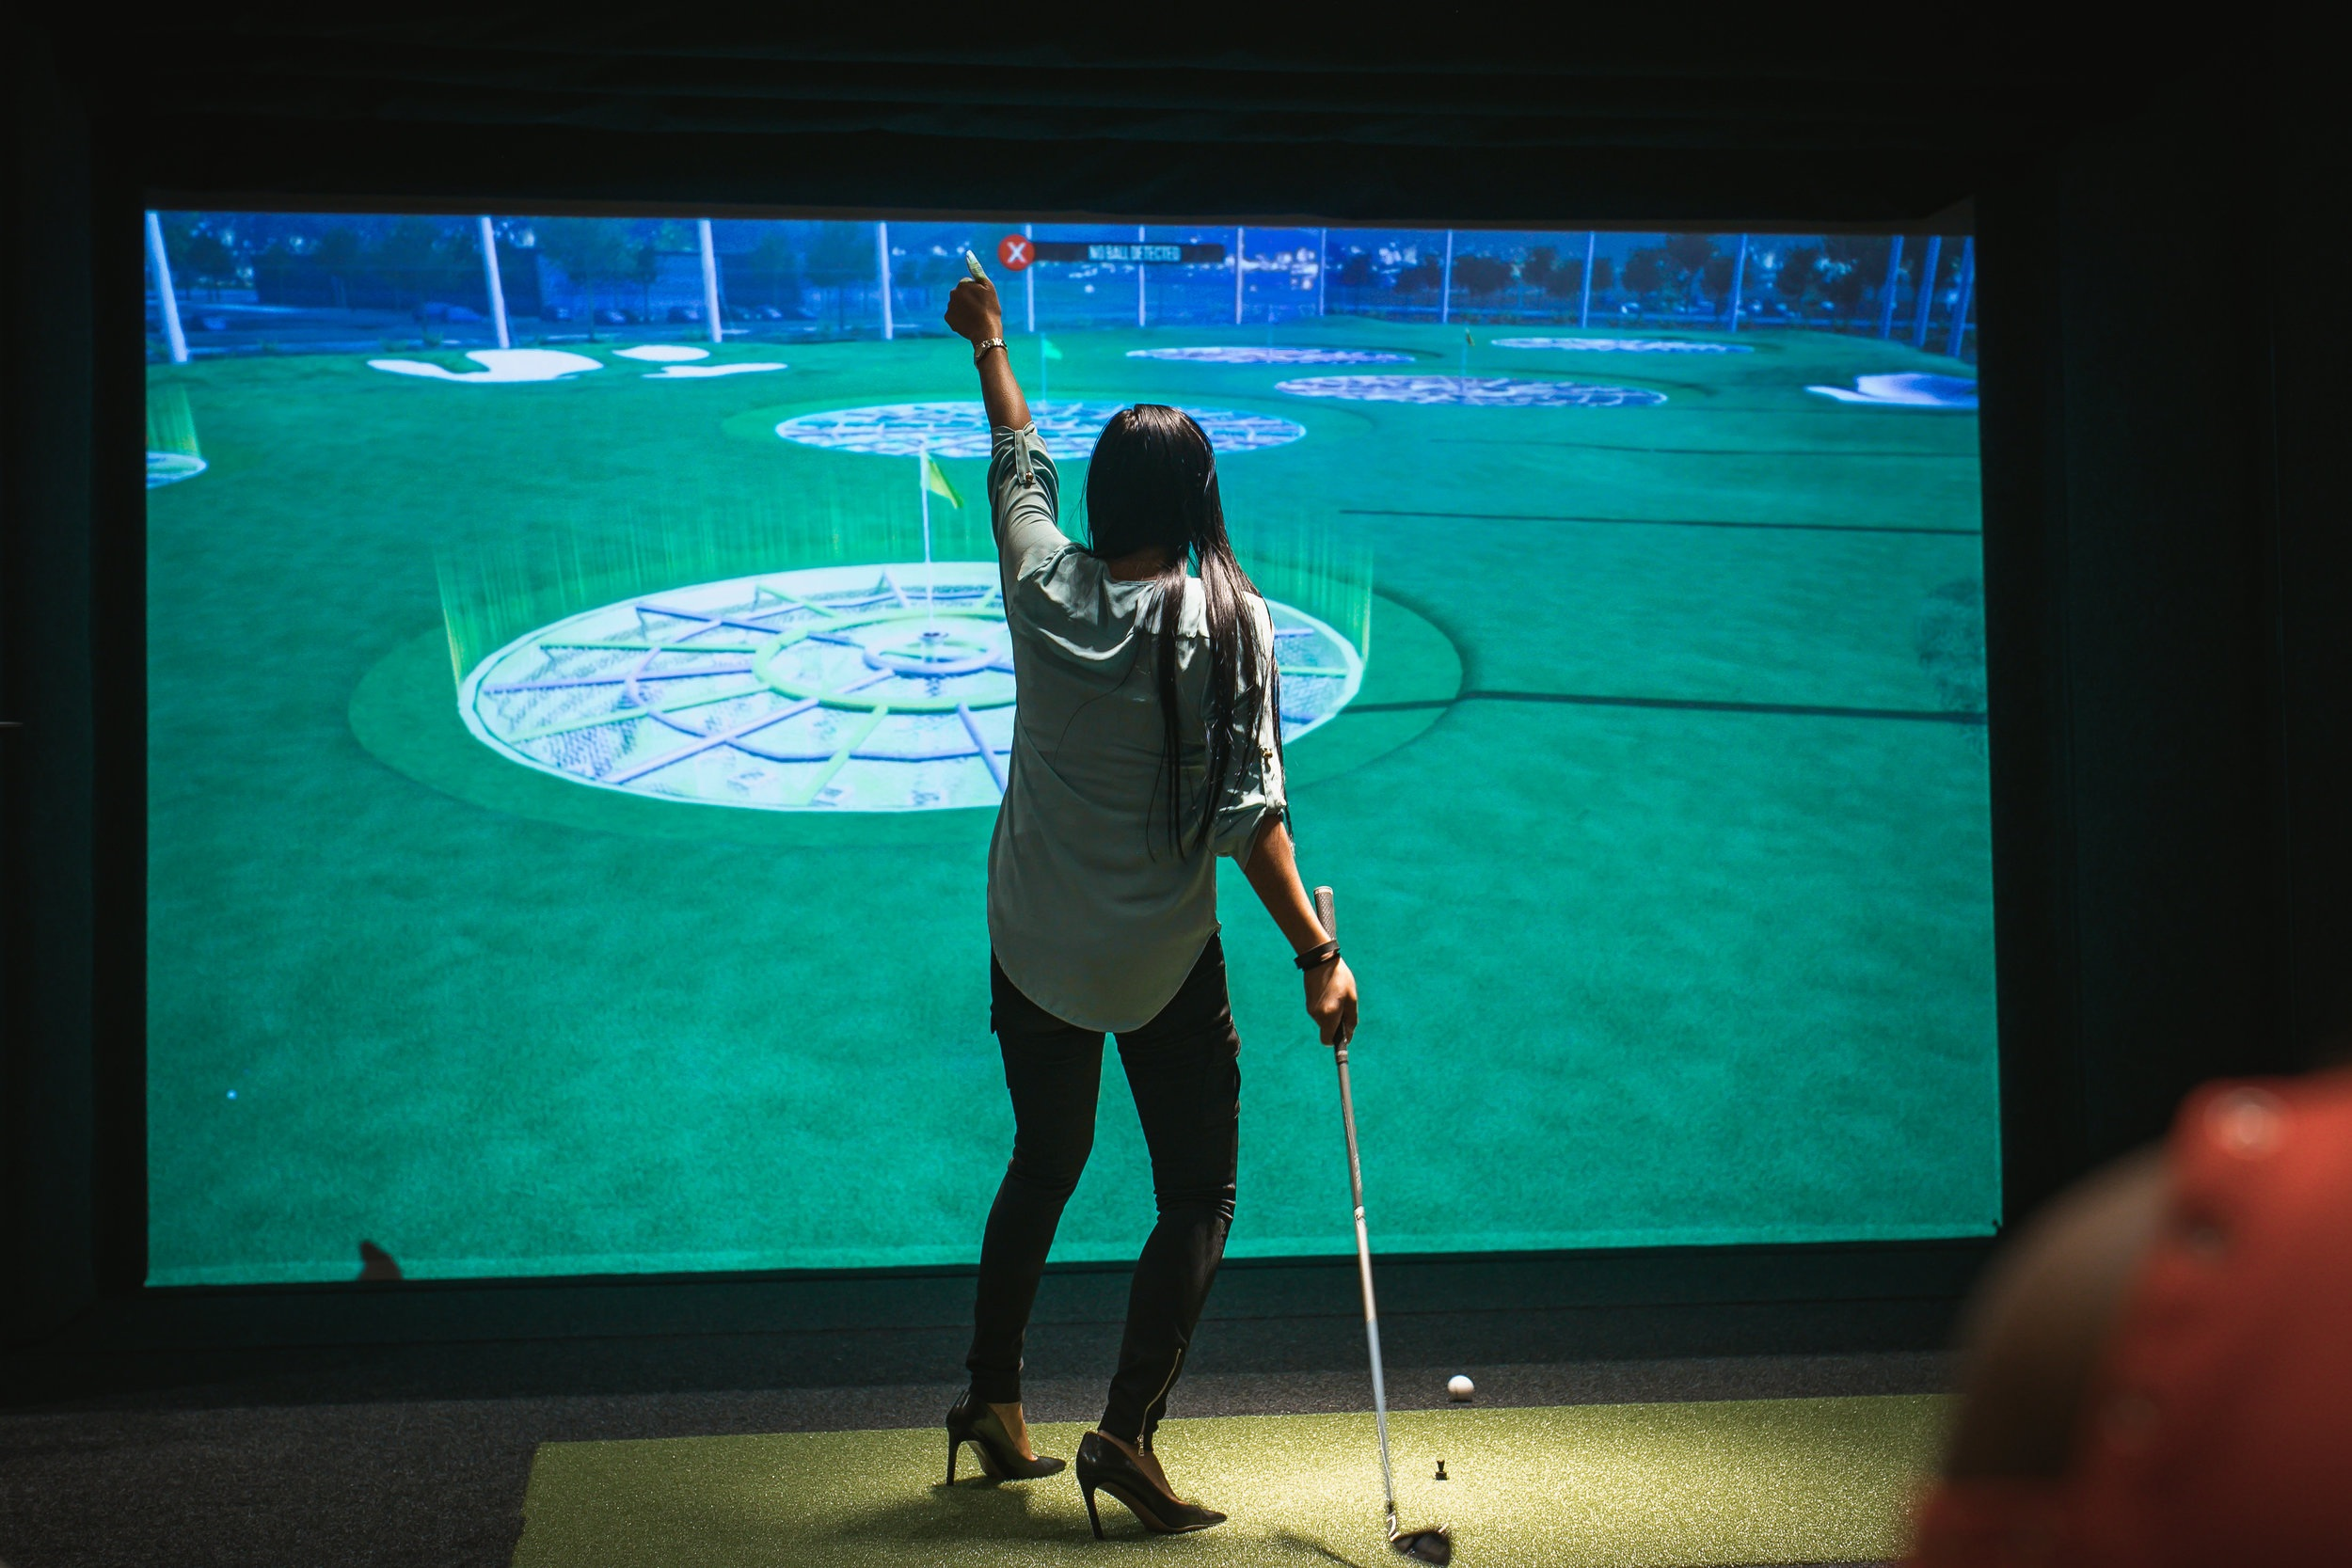 Games   Games for all ages and skill levels! TopGolf Swing Suites are perfect for everyone from veteran golfers to first timers and everyone in between.